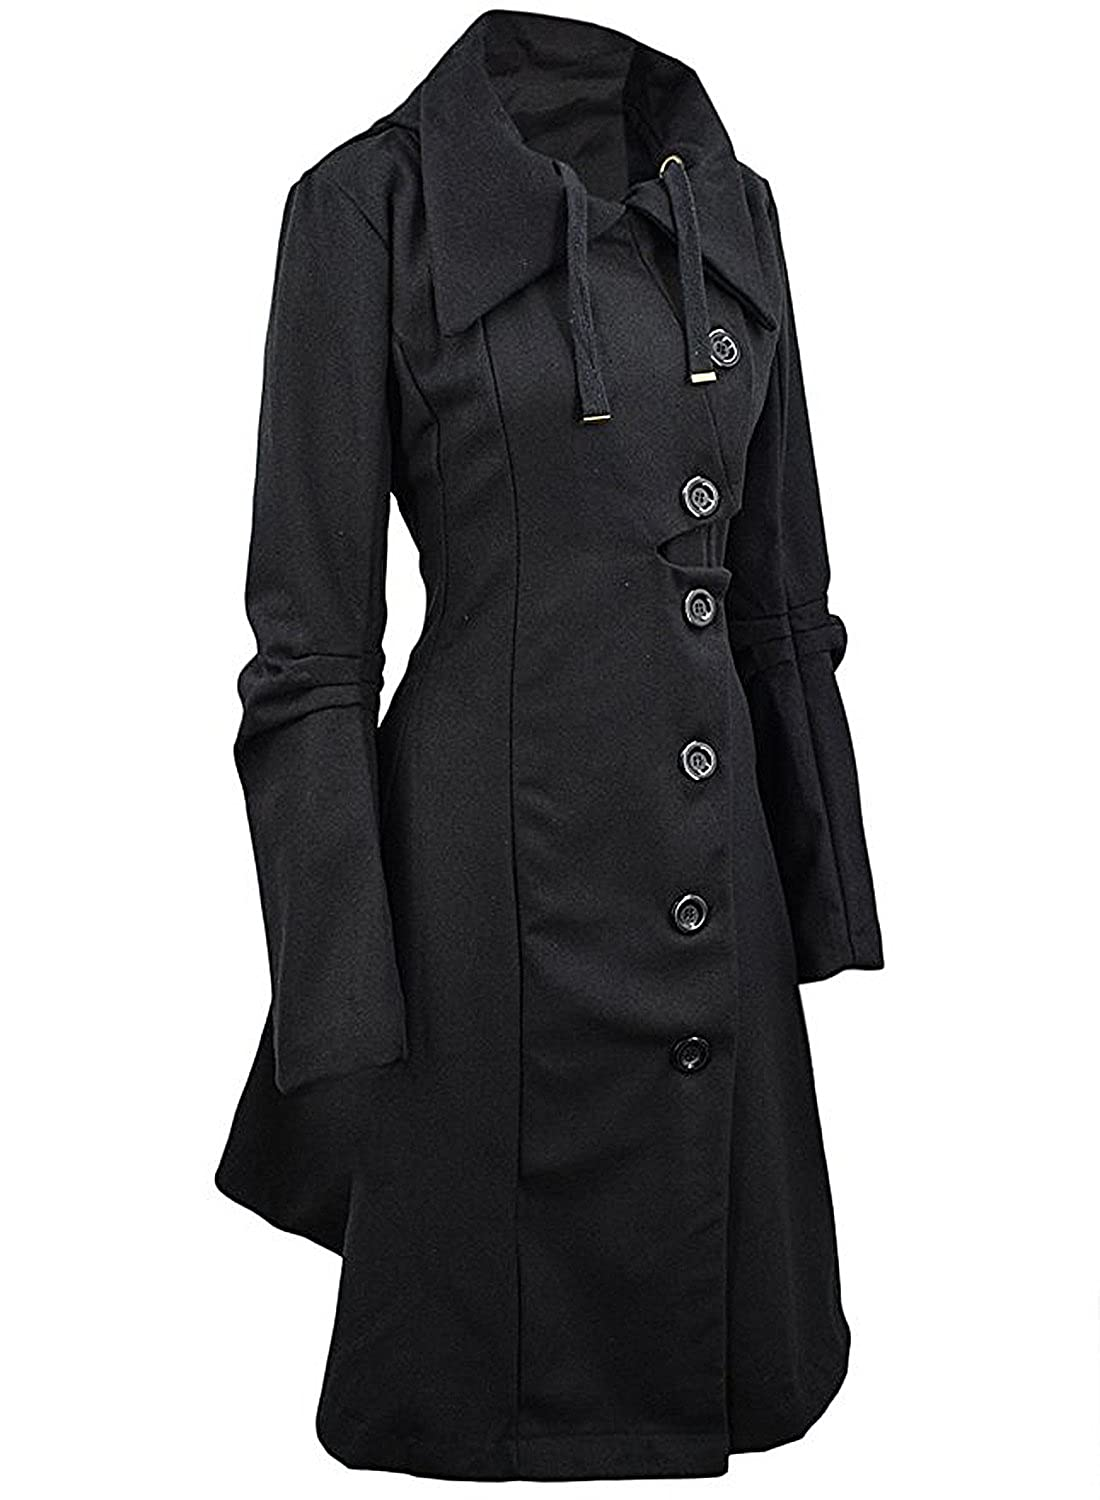 dfcc5474dff Amazon.com  Azbro Women Winter Outdoor Wool Blended Classic Pea Coat Jacket   Clothing